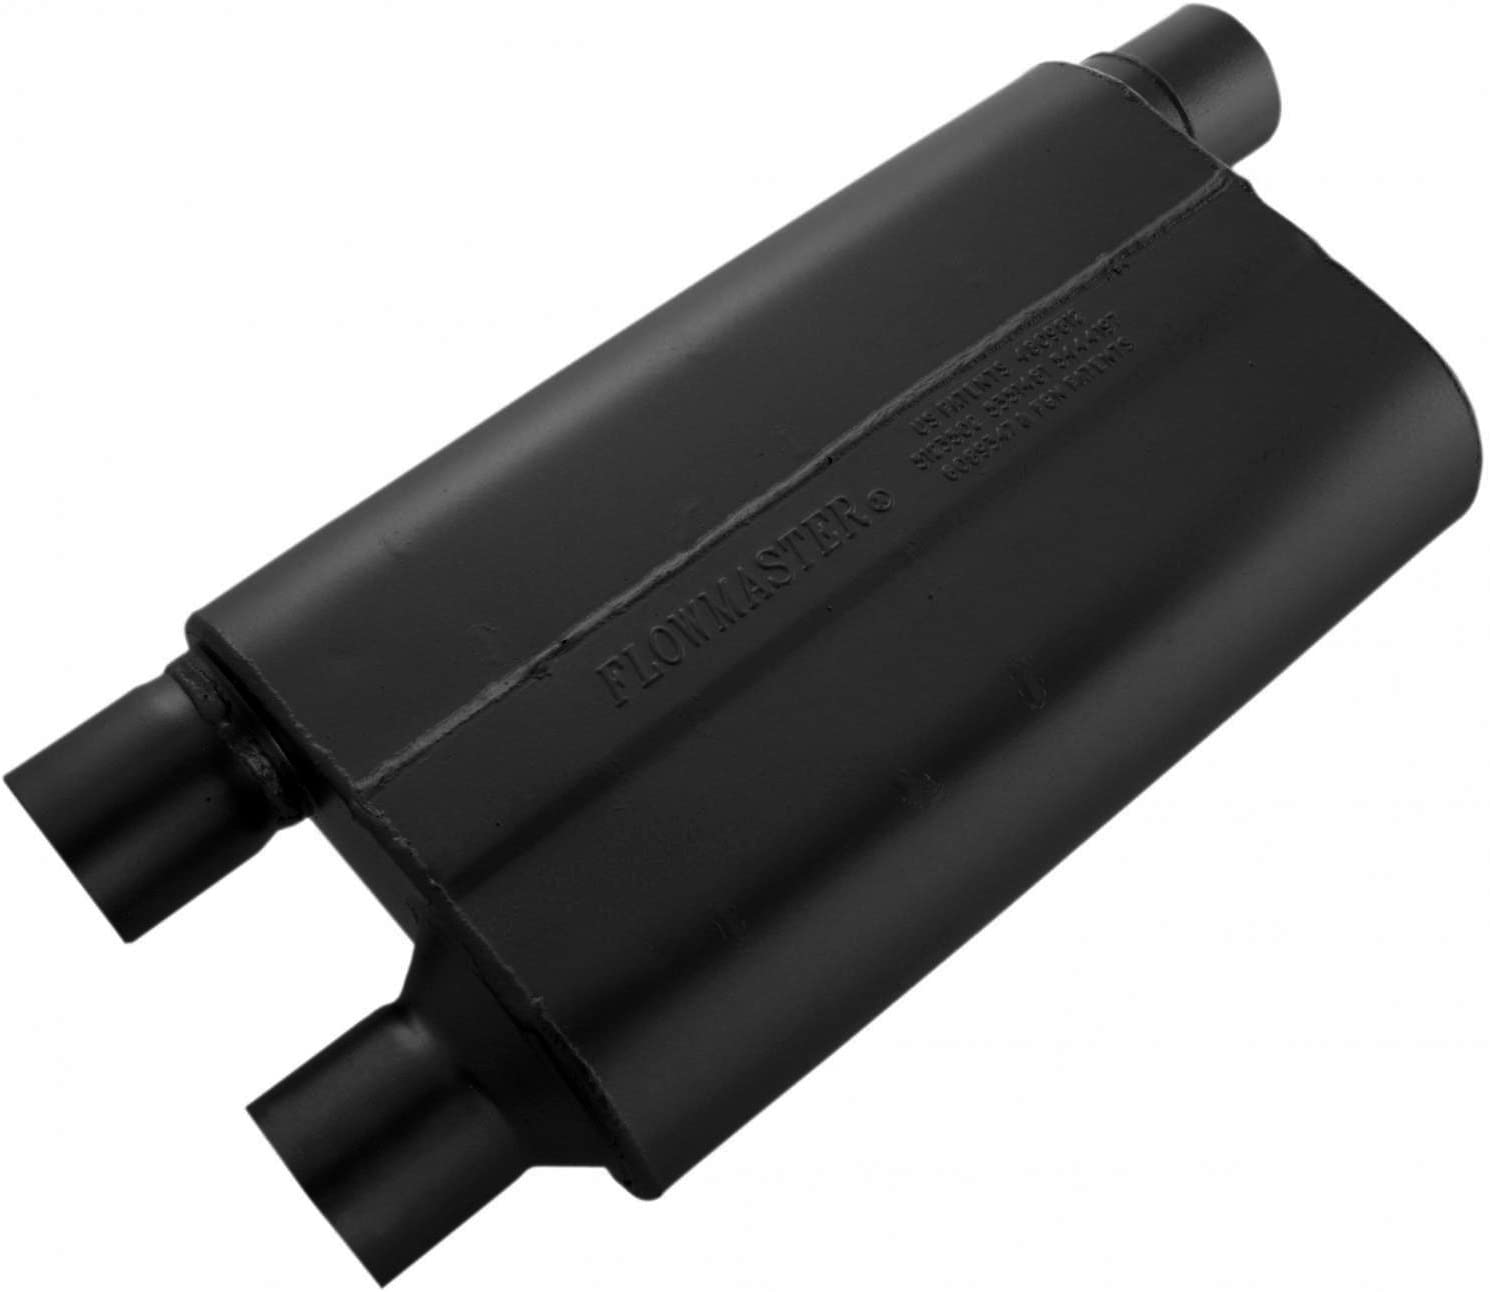 B000182DNI Flowmaster 42583 80 Series Muffler - 2.50 Offset IN / 2.50 Dual OUT - Aggressive Sound 61JuW0gG2NL.SL1500_